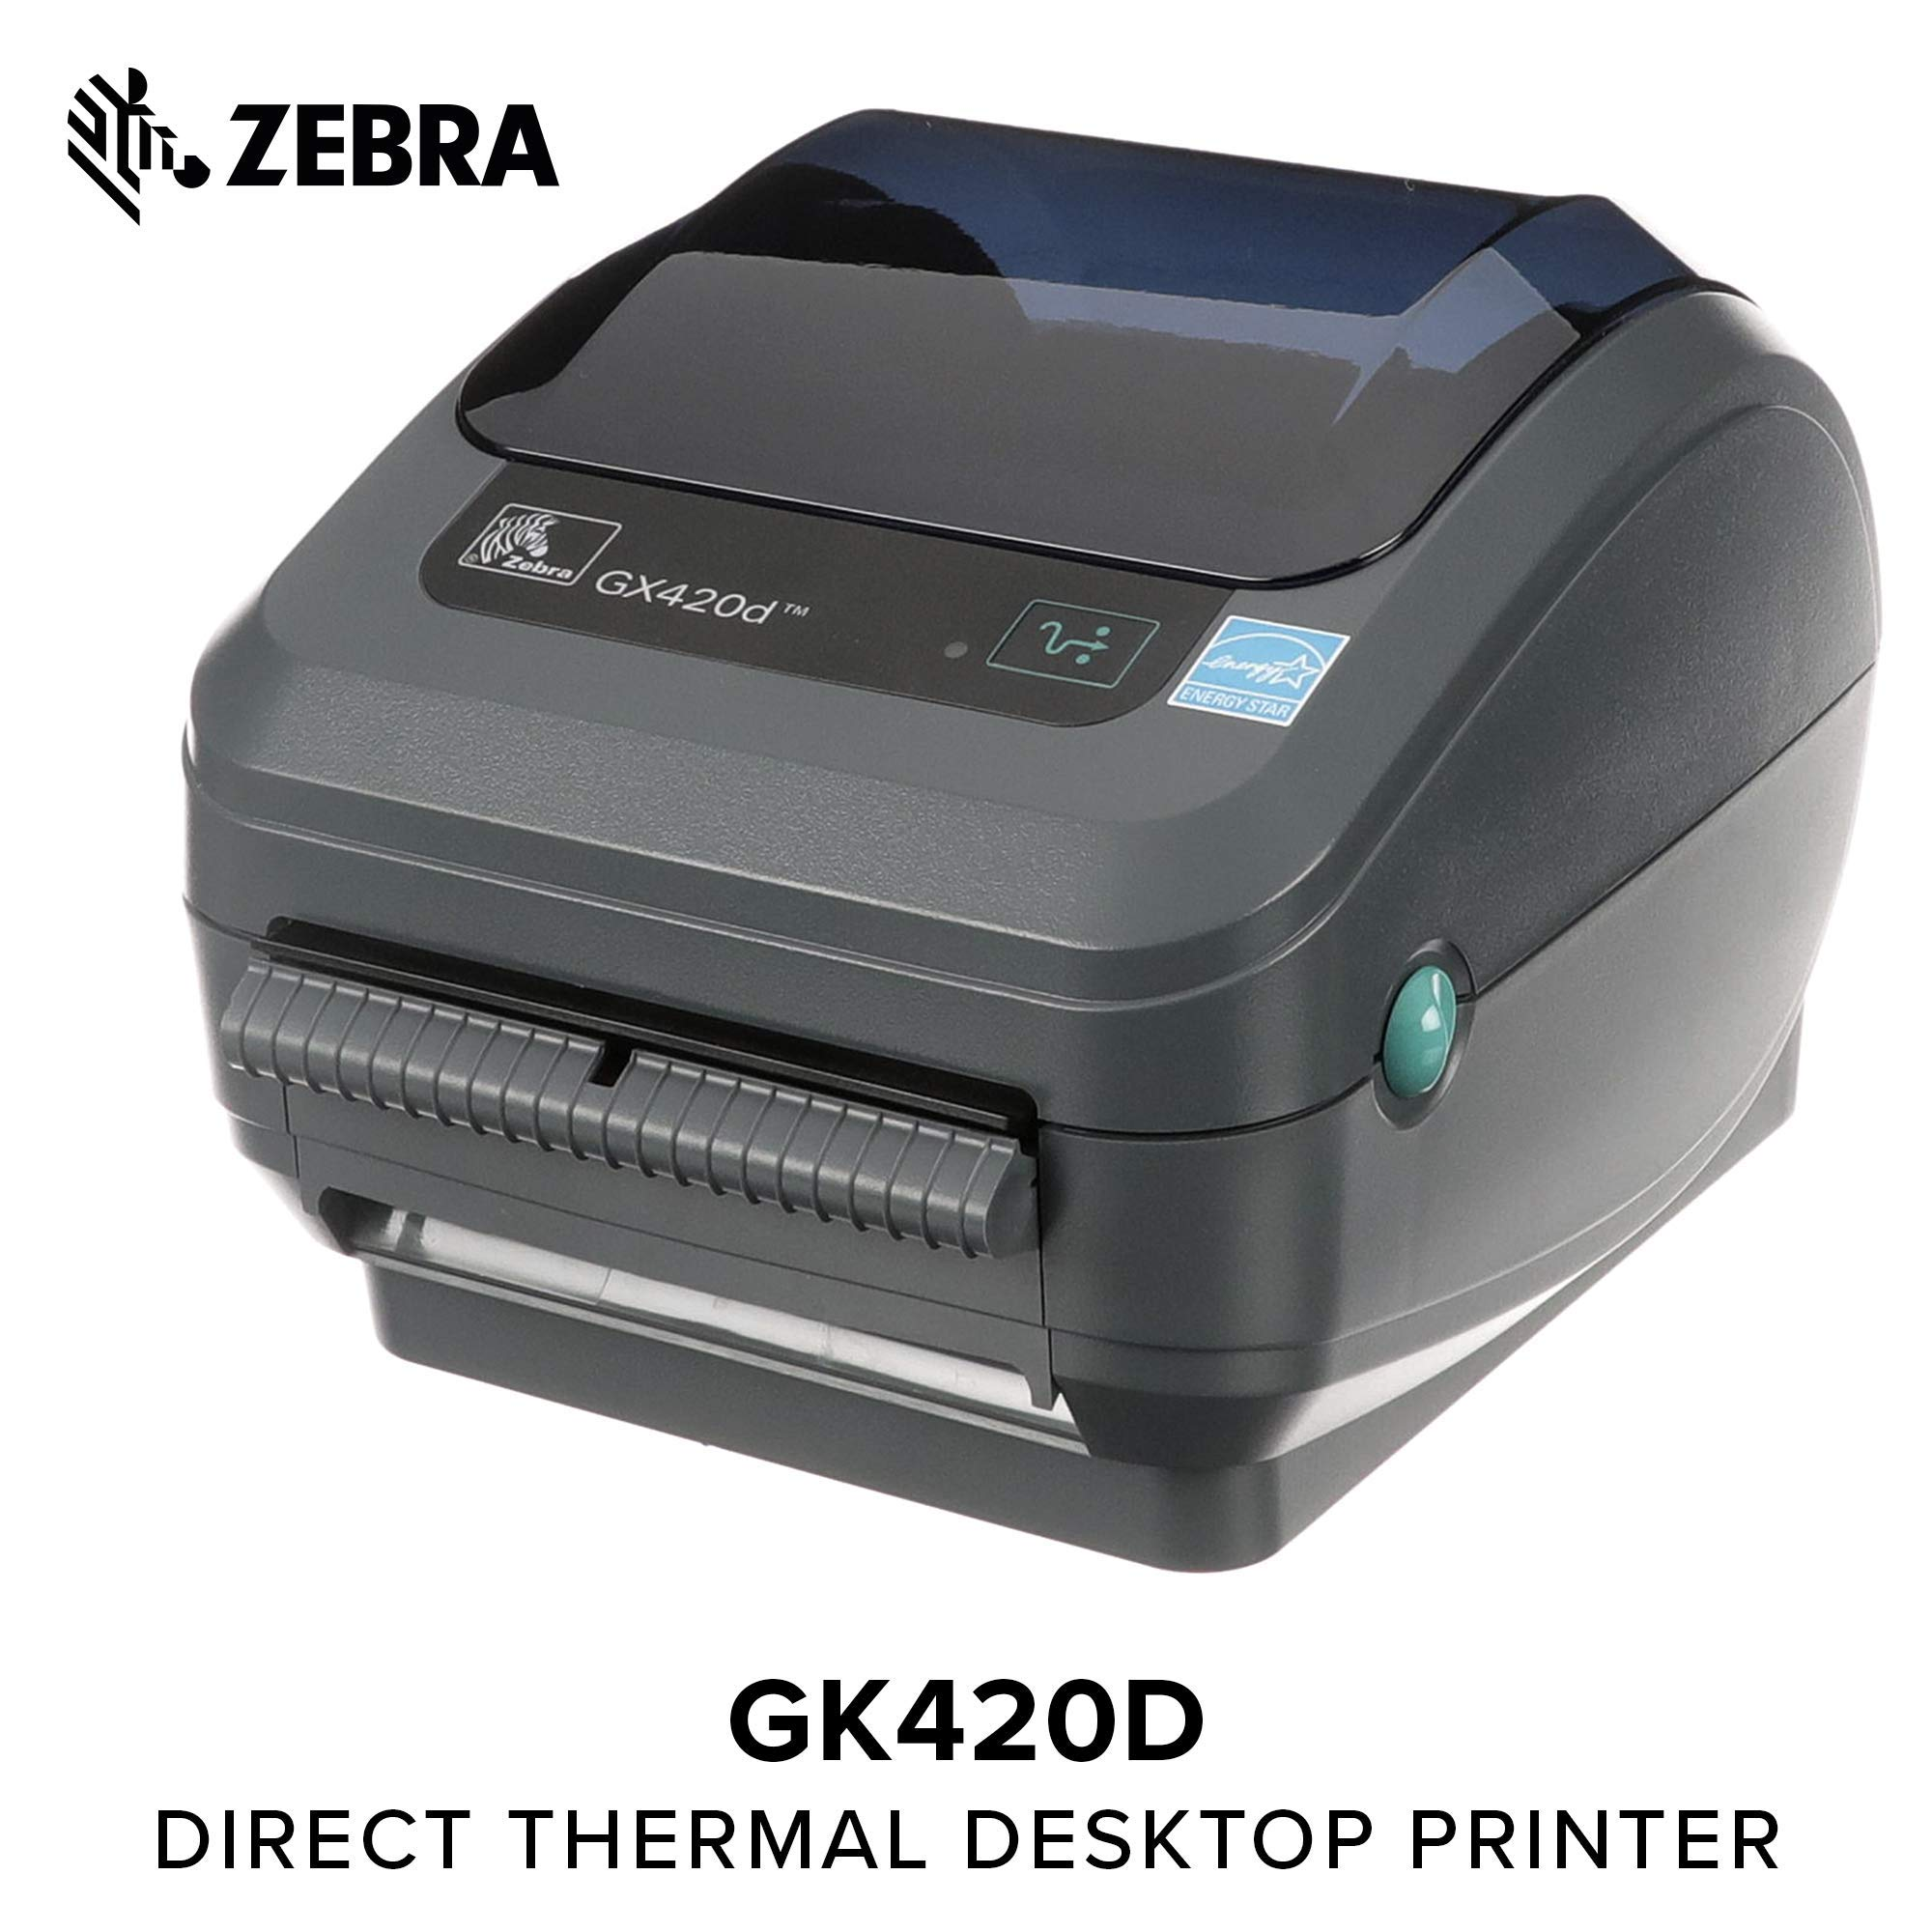 Zebra - GX420d Direct Thermal Desktop Printer for Labels, Receipts, Barcodes, Tags, and Wrist Bands - Print Width of 4 in - USB, Serial, and Ethernet Port Connectivity (Includes Peeler) (Renewed)